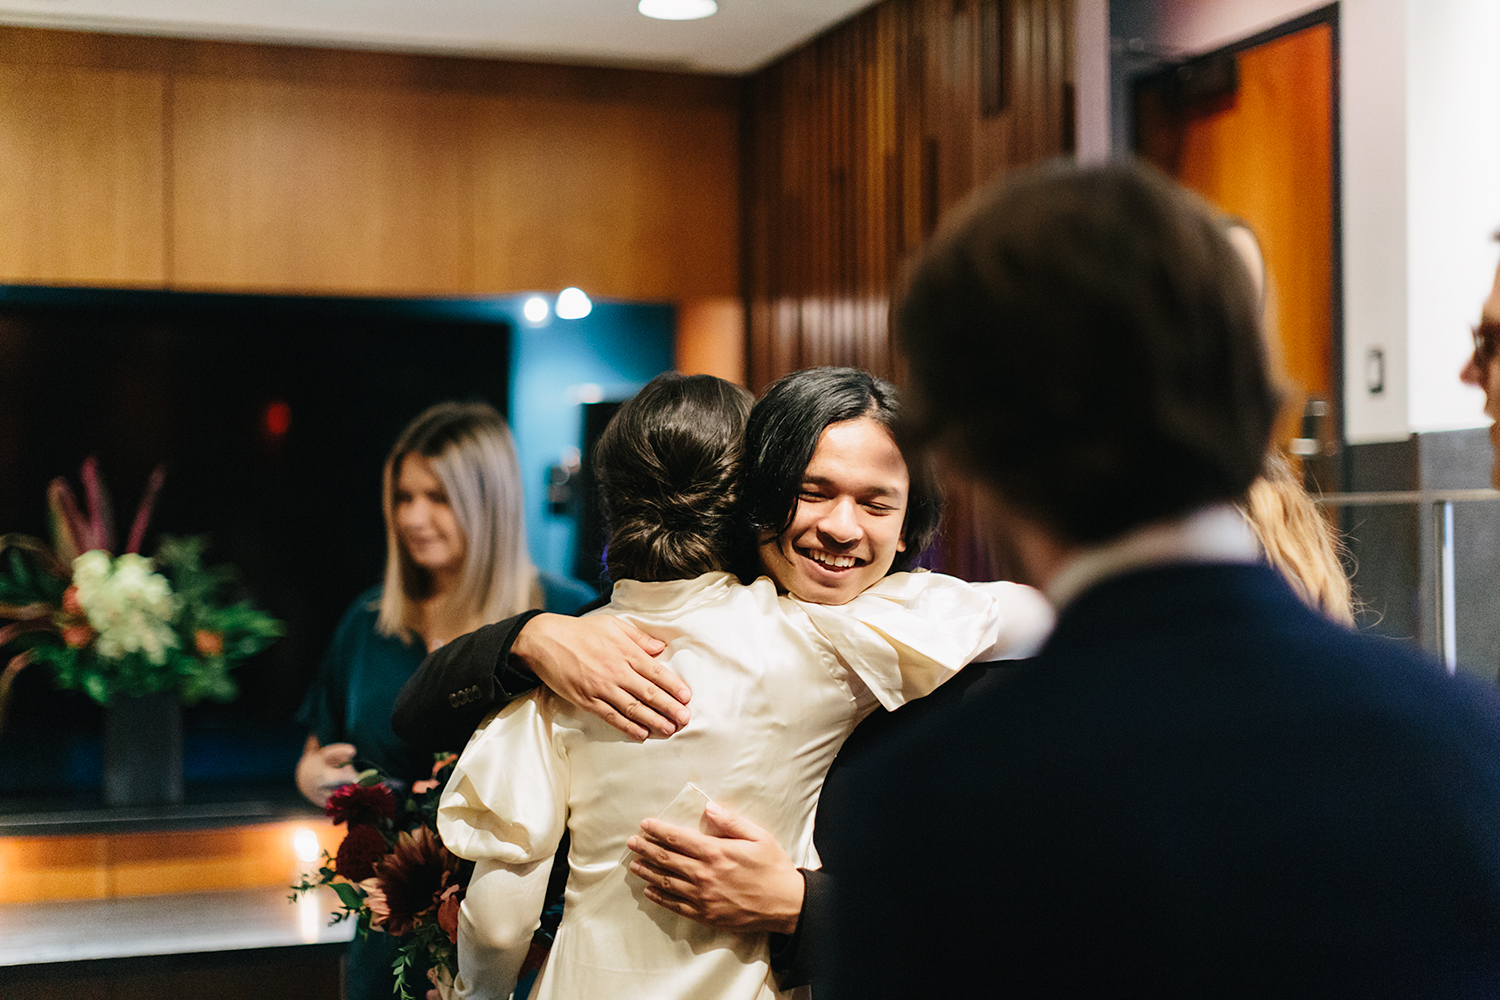 hugging-just-married-celebration-with-witnesses-candid-laughing-emotional-tattooed-bride-vintage-wedding-inspiration-bouquet-by-timberlost-Toronto-Elopement-at-the-Drake-Hotel-Torontos-Best-elopement-photographers-candid-documentary.jpg